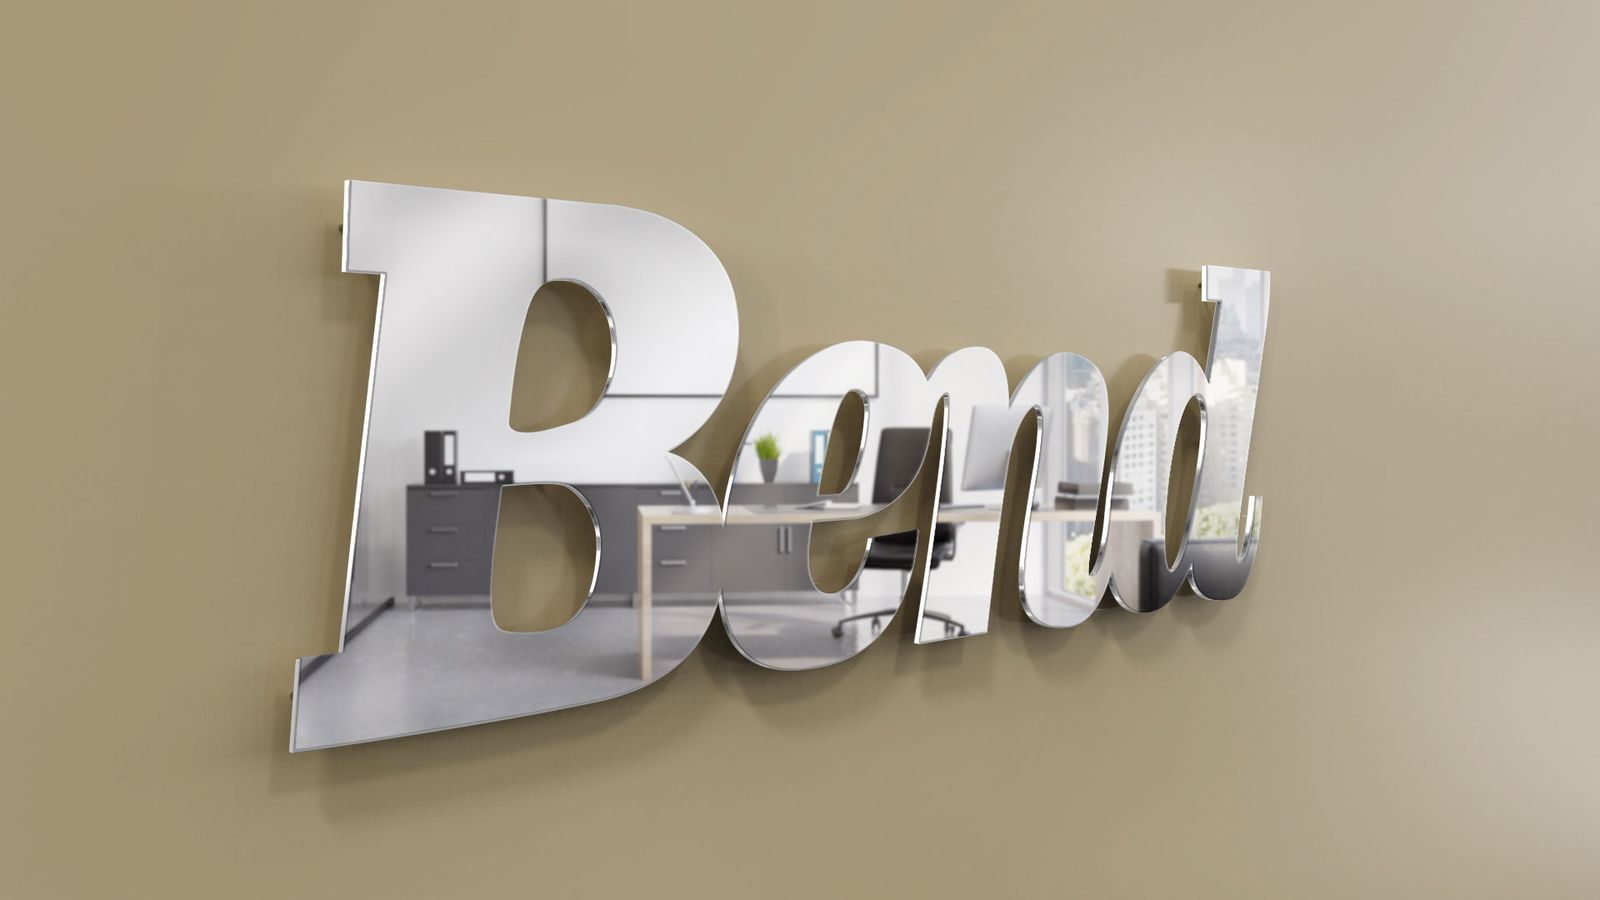 pin mounted letters rendering